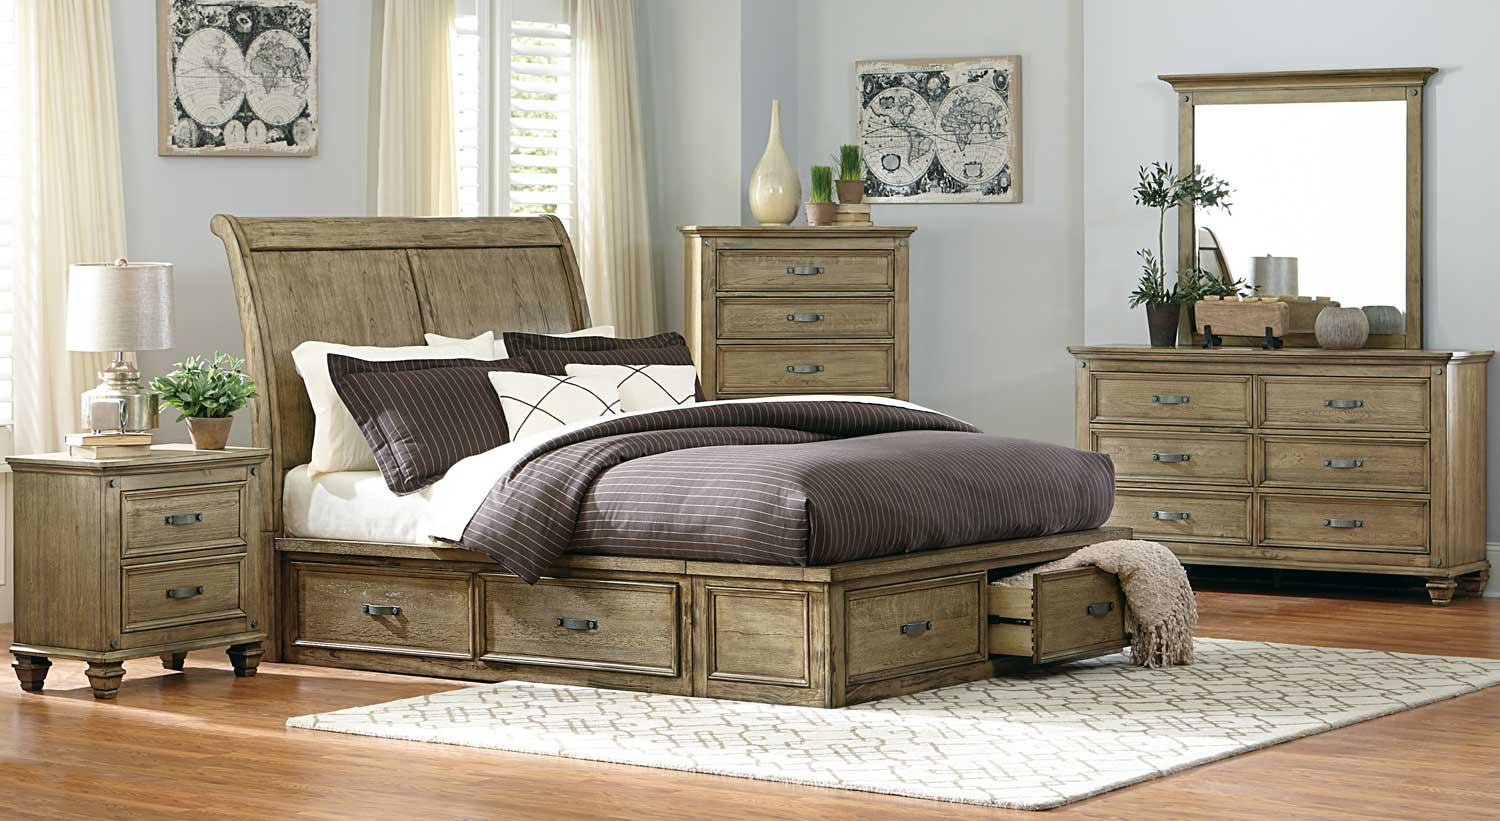 driftwood large size set full reclaimed wood of me distressed furniture near bedroom handcrafted bed platform